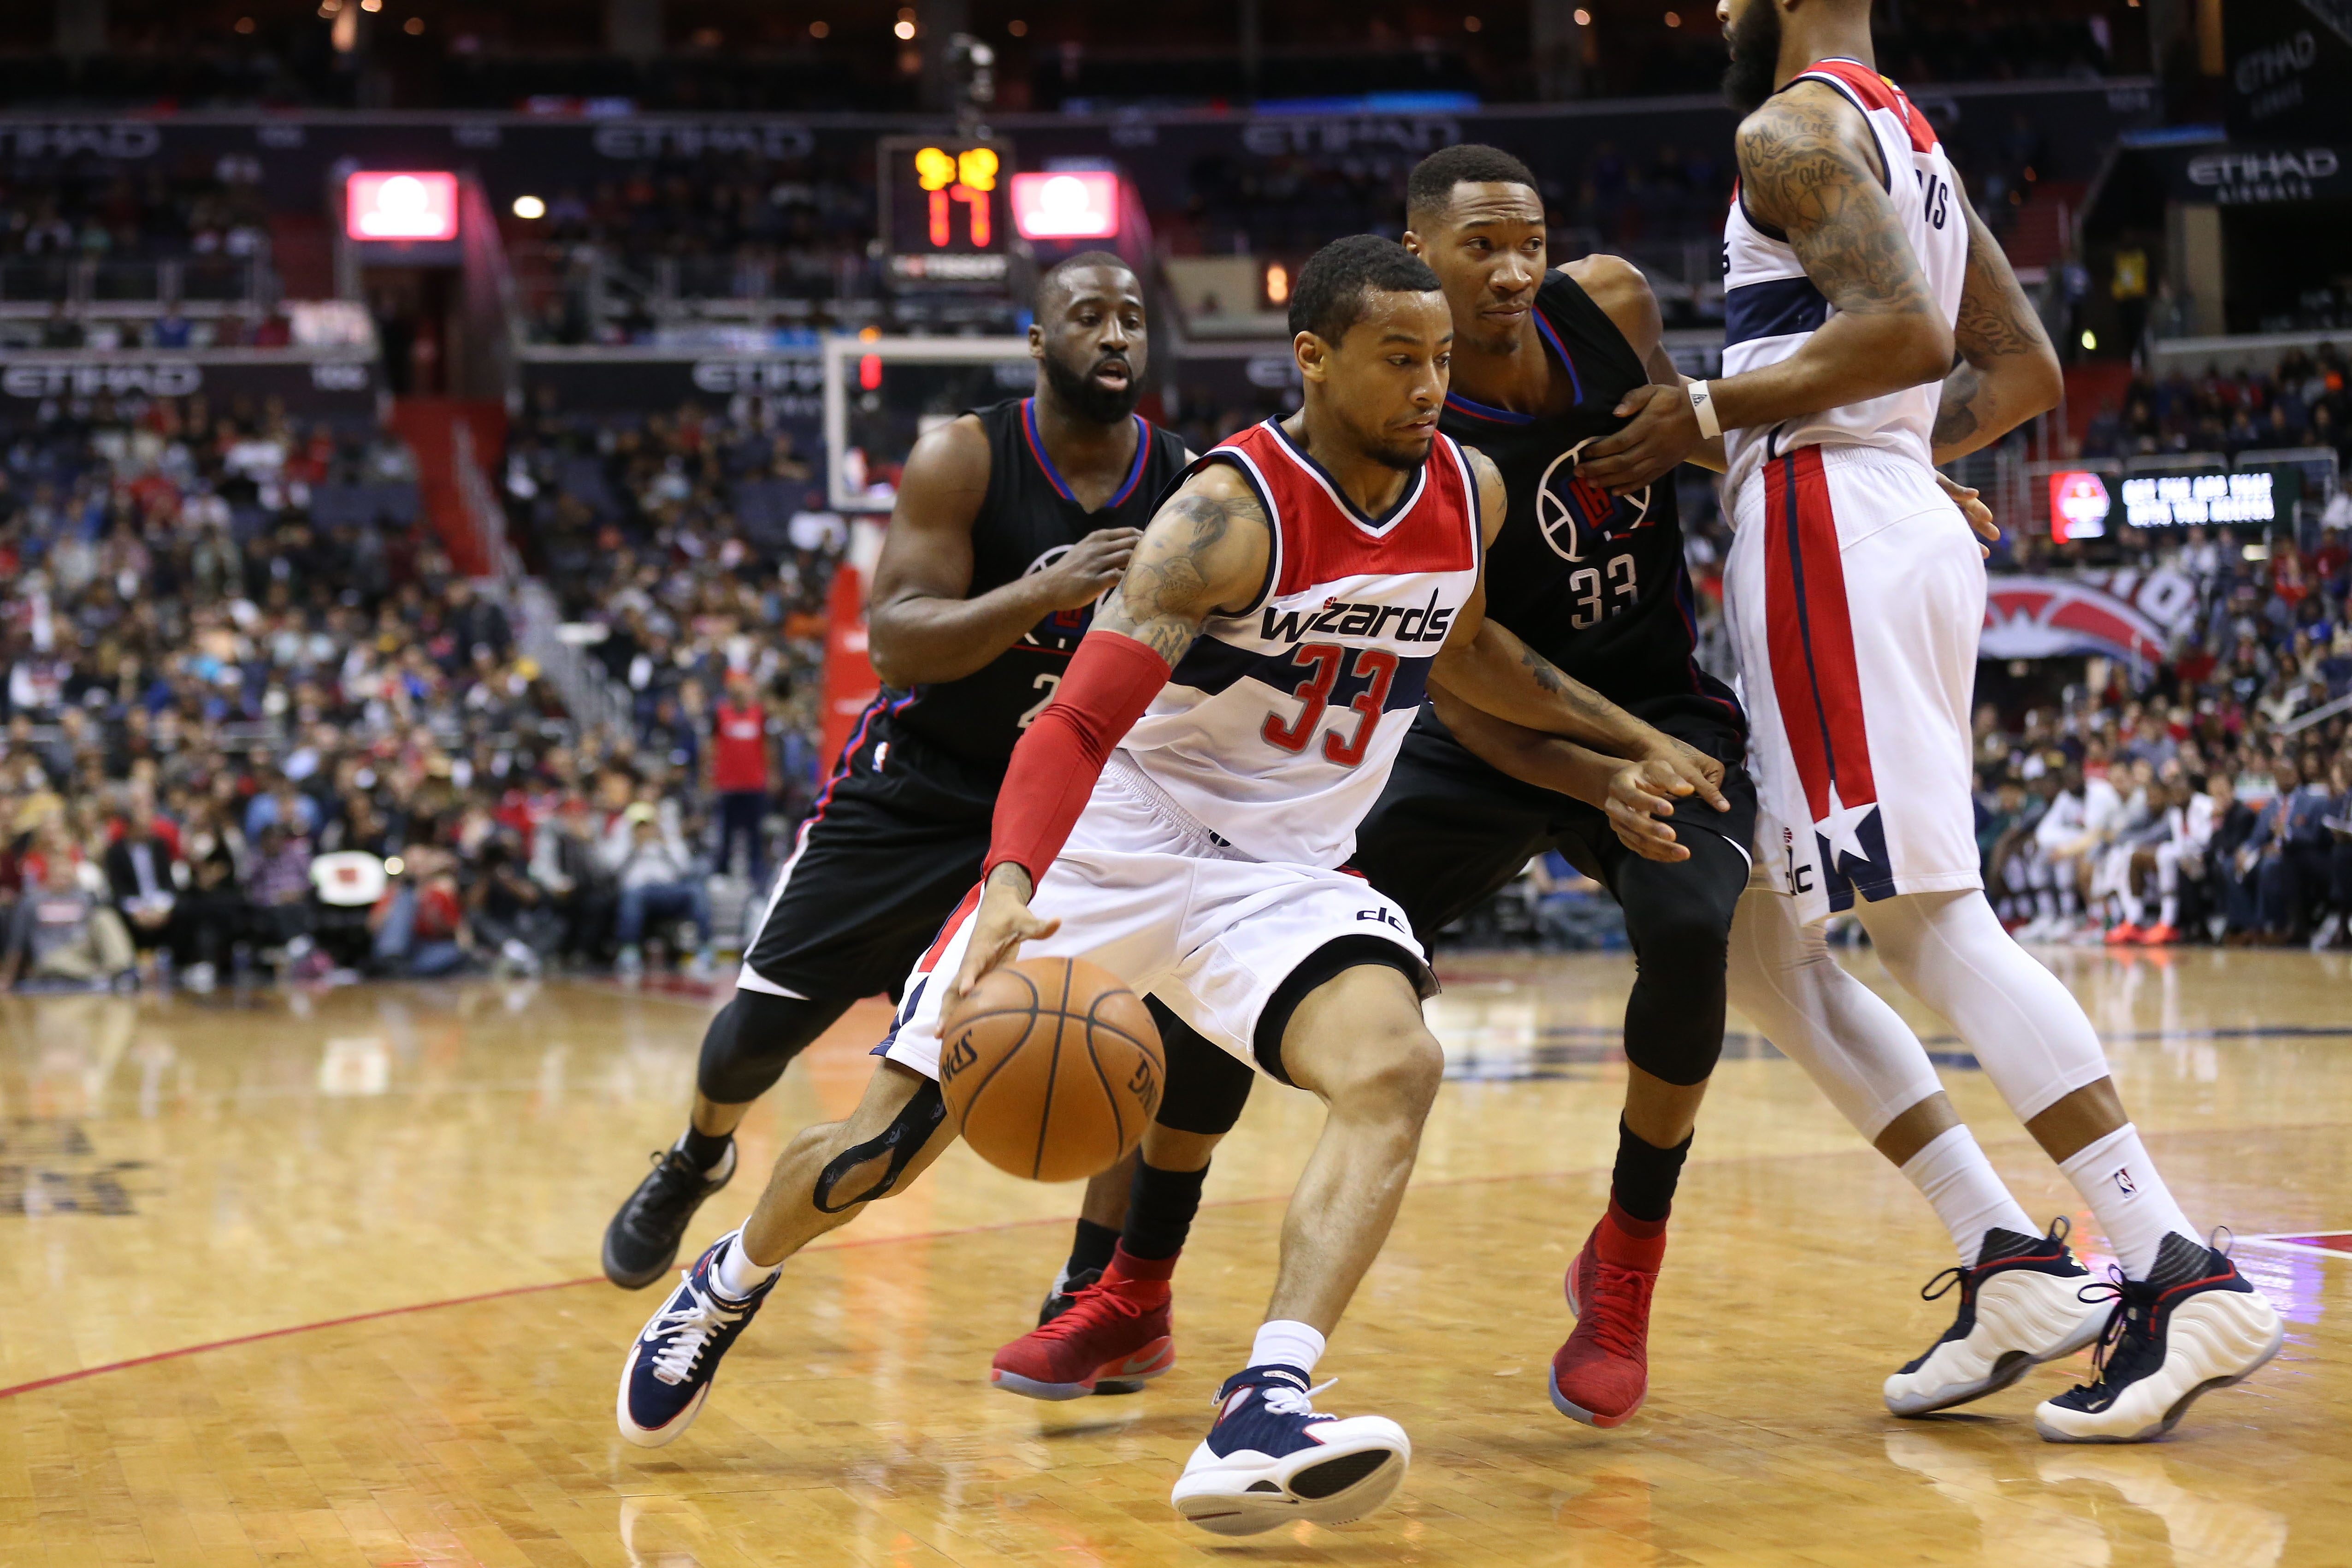 9755663-nba-los-angeles-clippers-at-washington-wizards